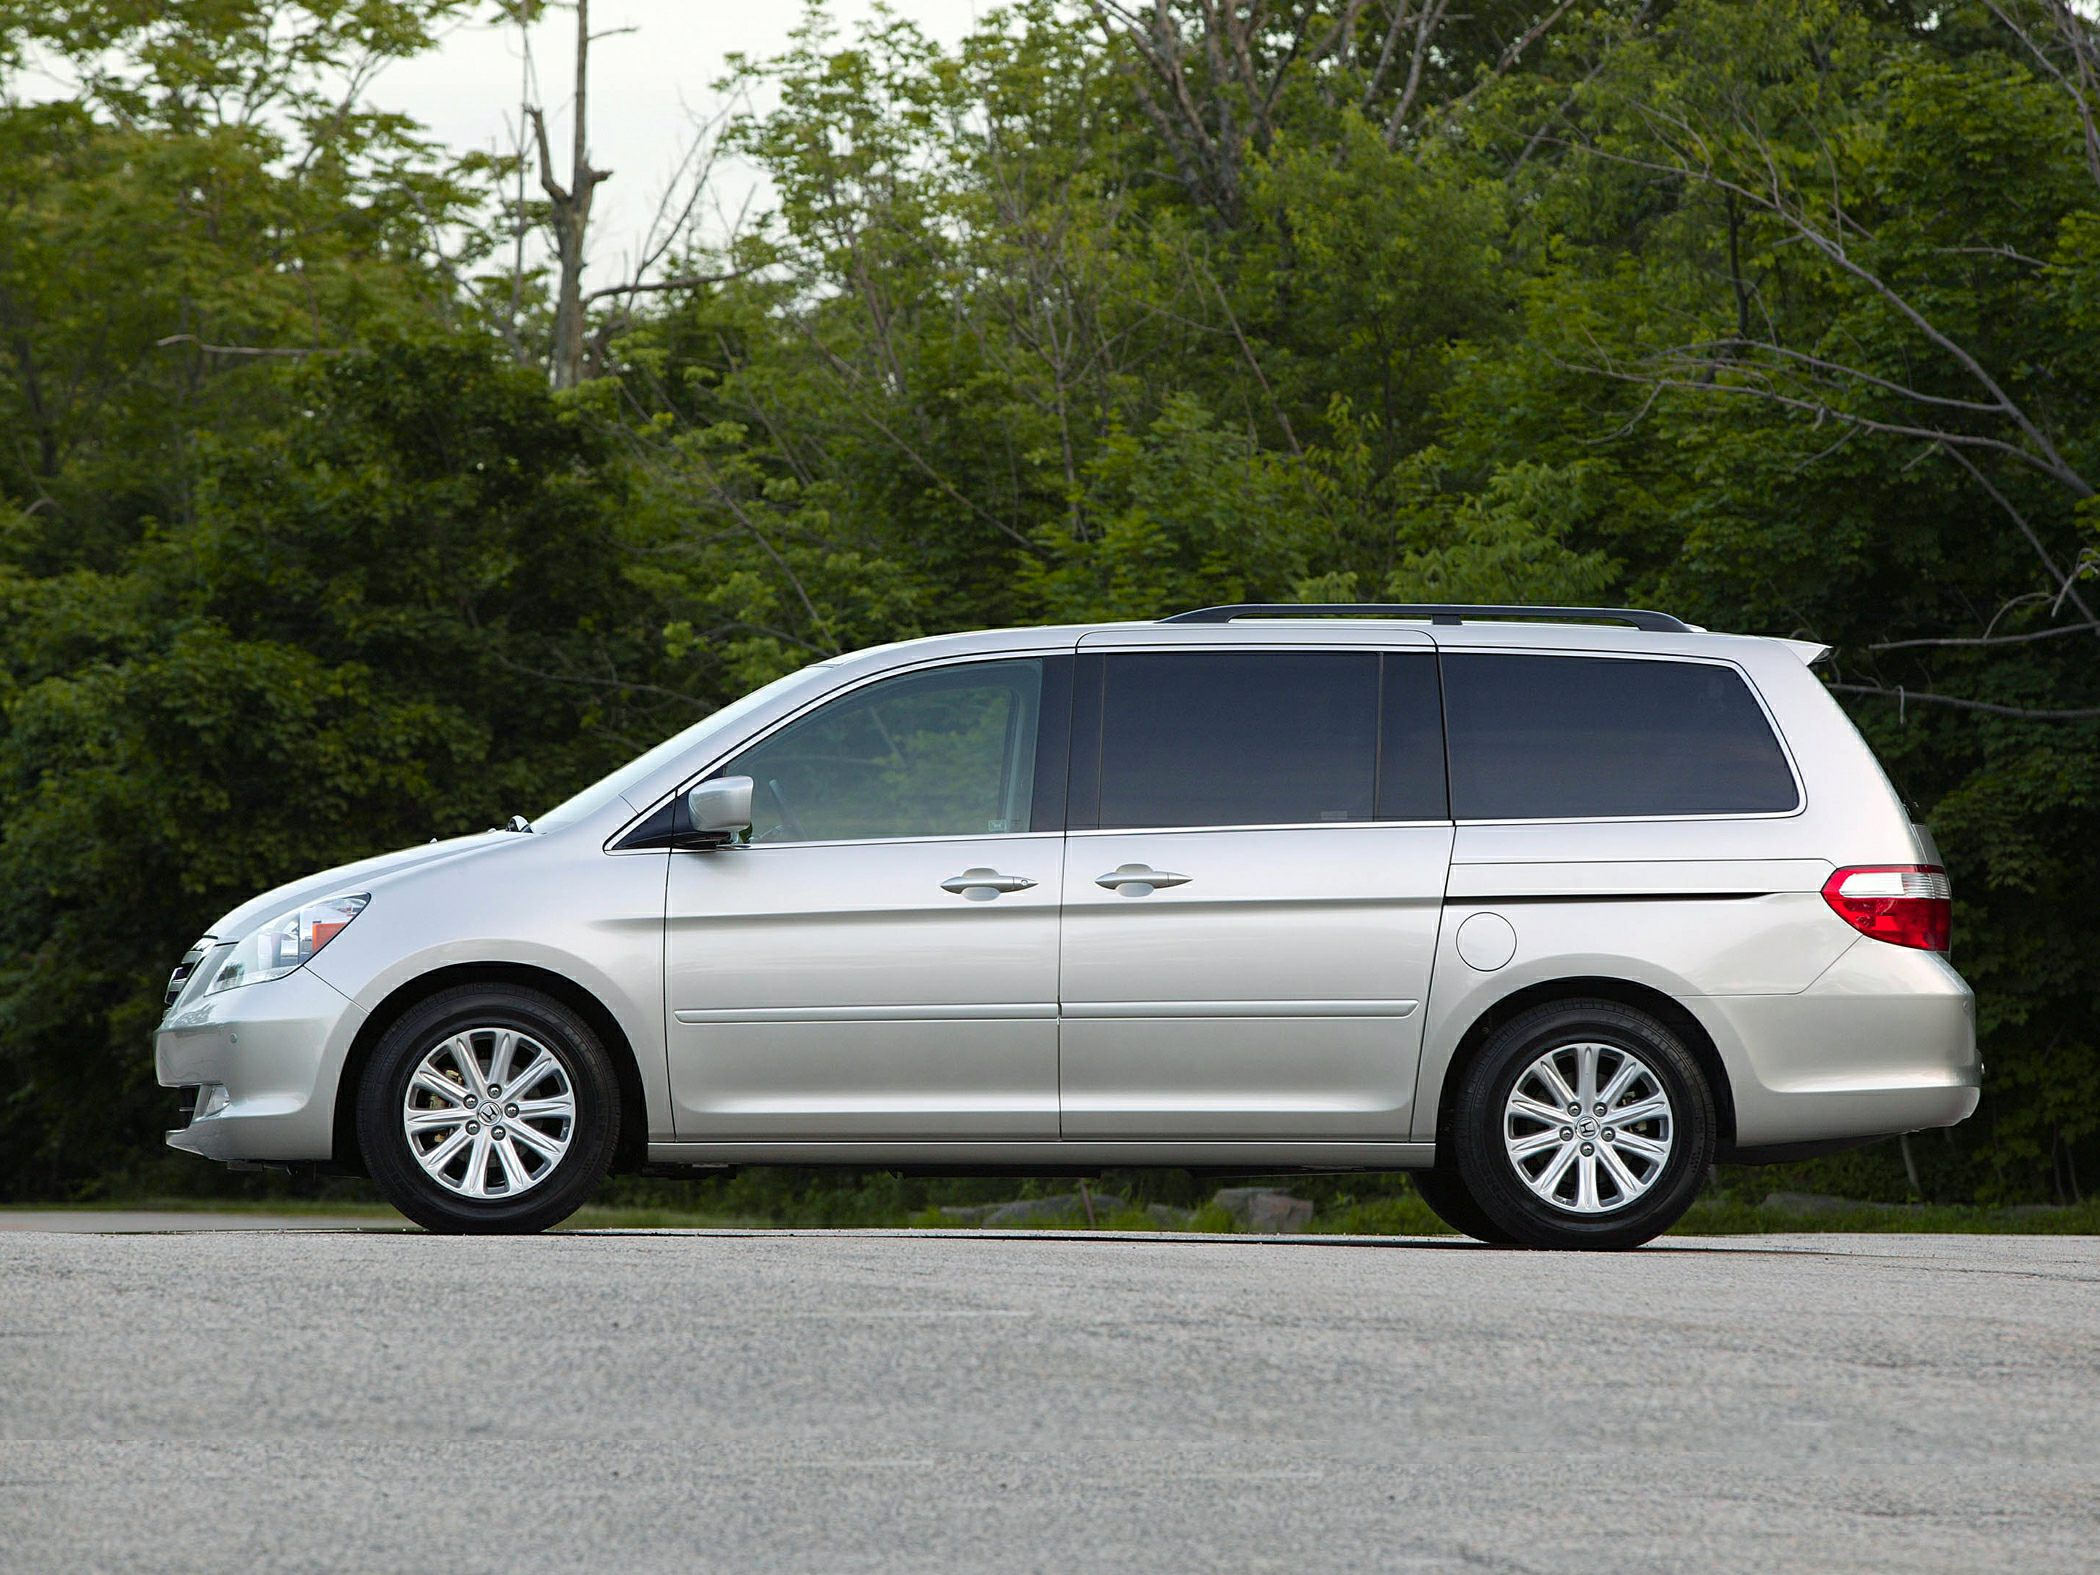 2007 Honda Odyssey Touring W Dvd Res Passenger Van Pictures